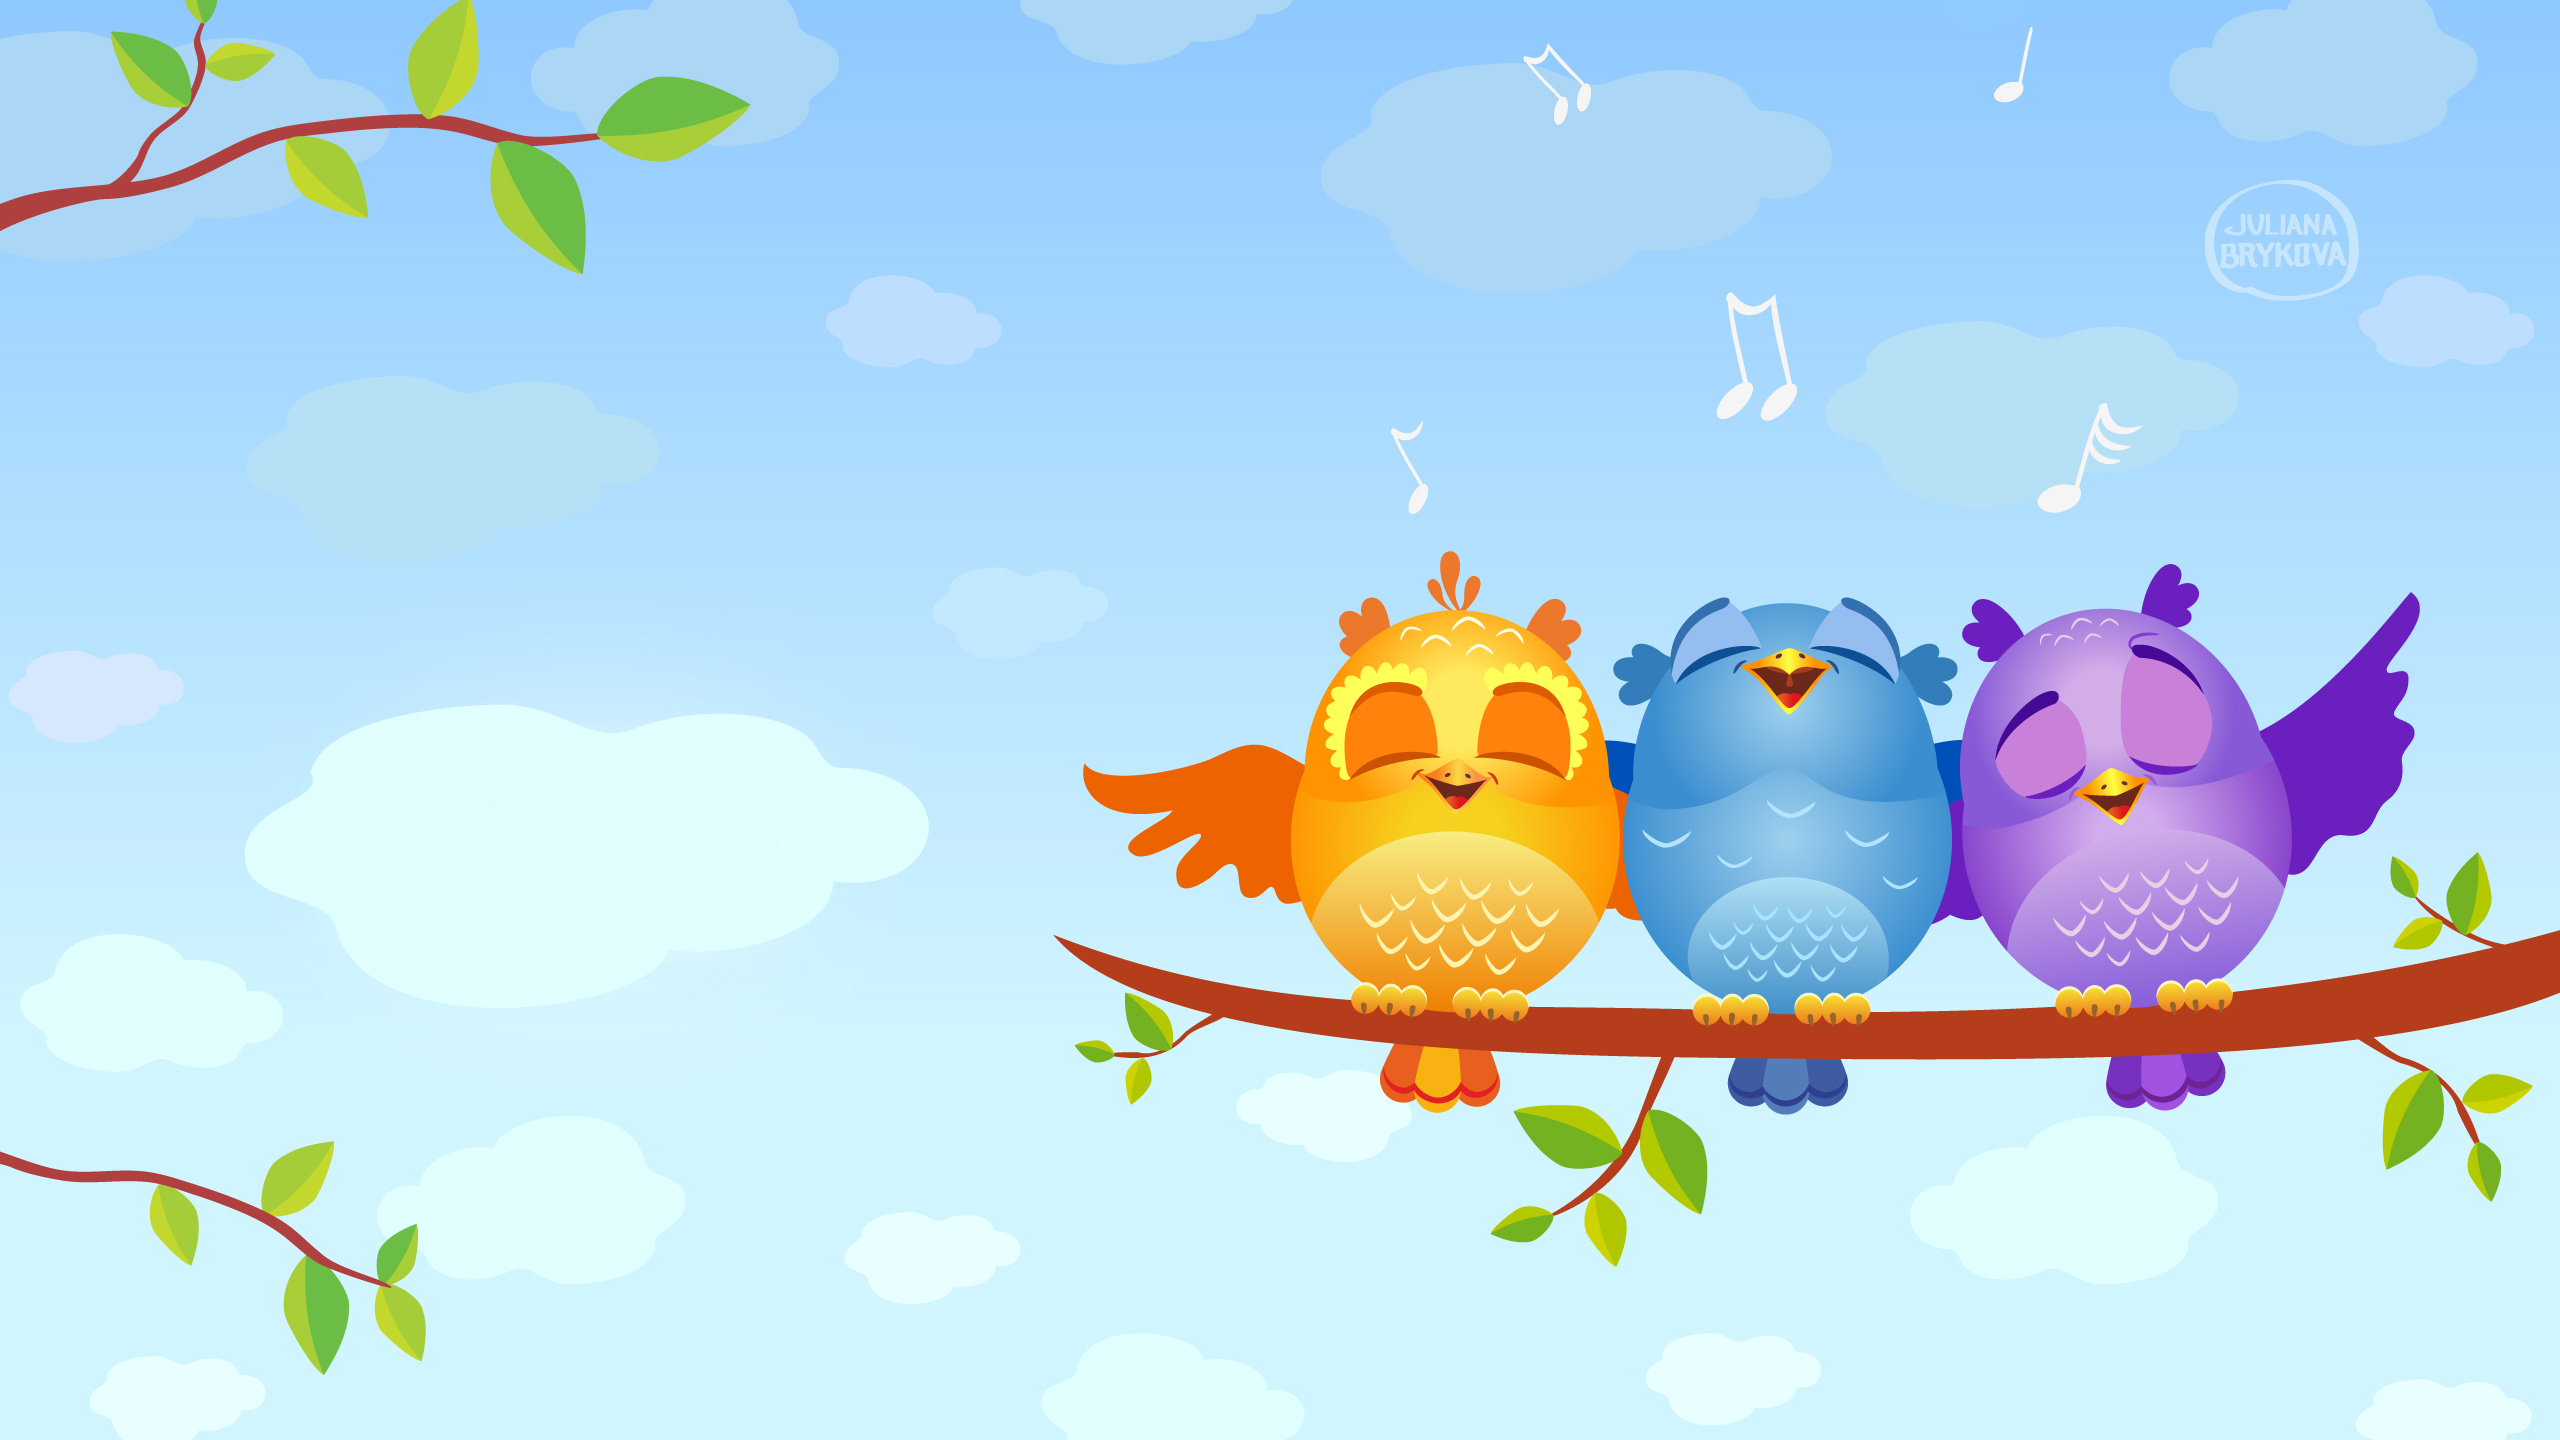 Singing Birds 127.04 Kb